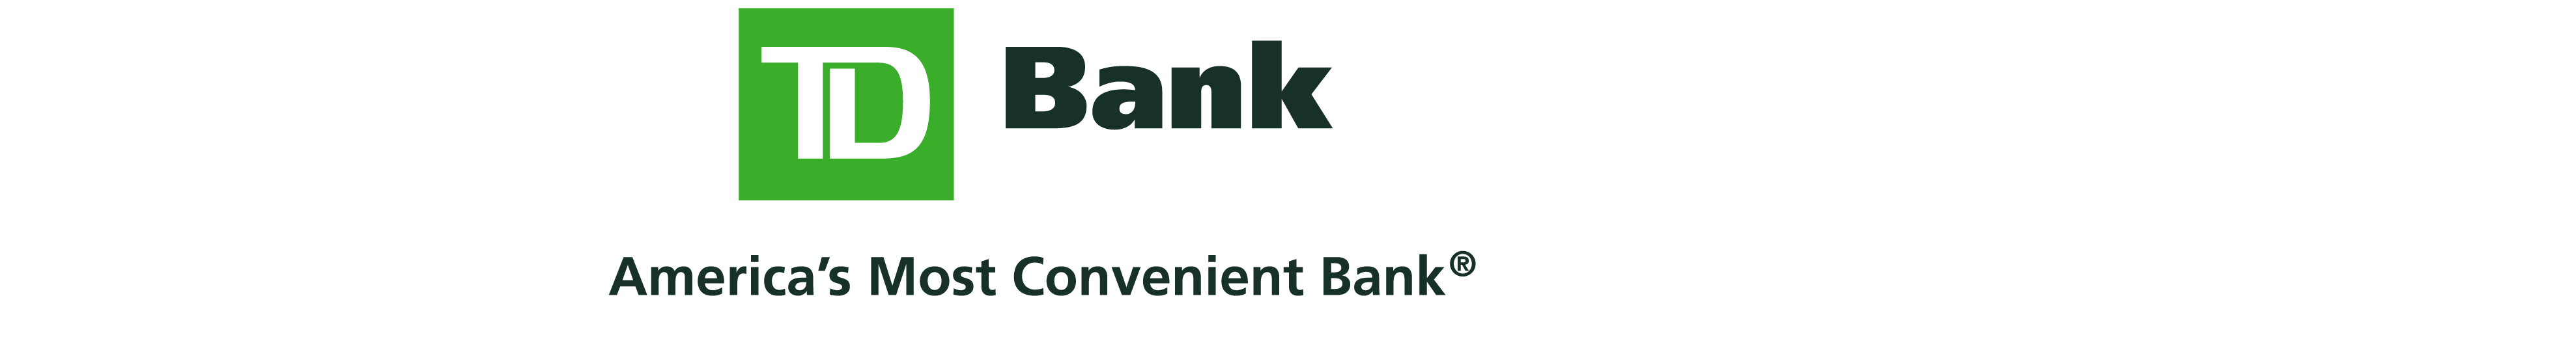 I'm an image! The TD bank logo